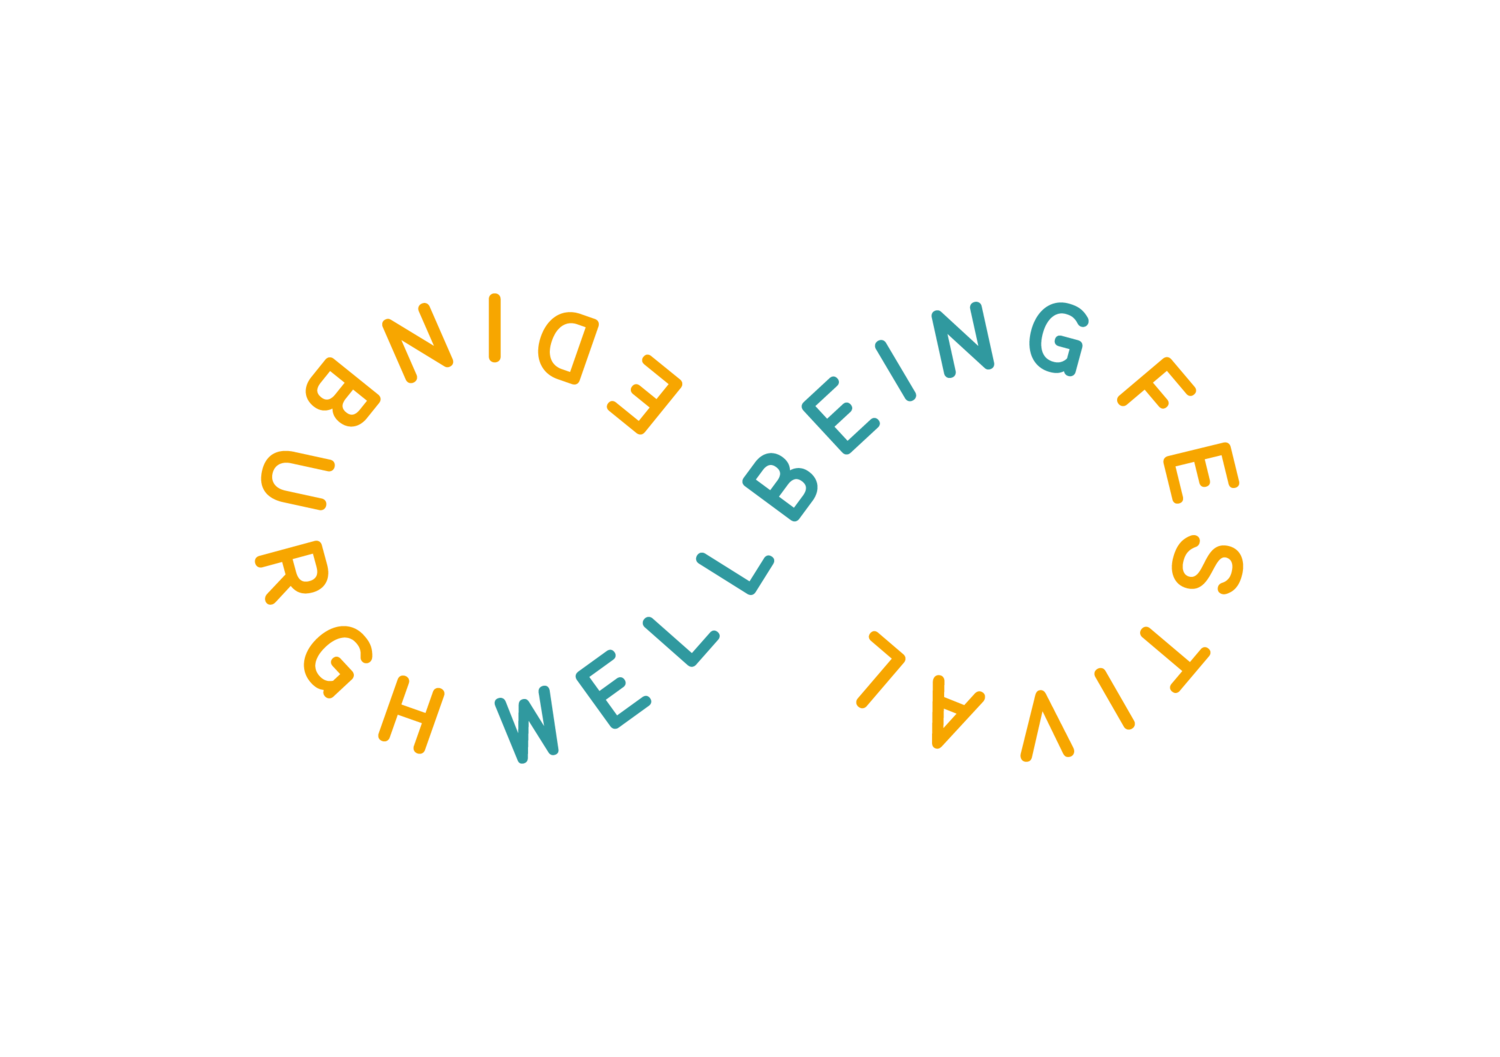 Edinburgh Wellbeing Festival